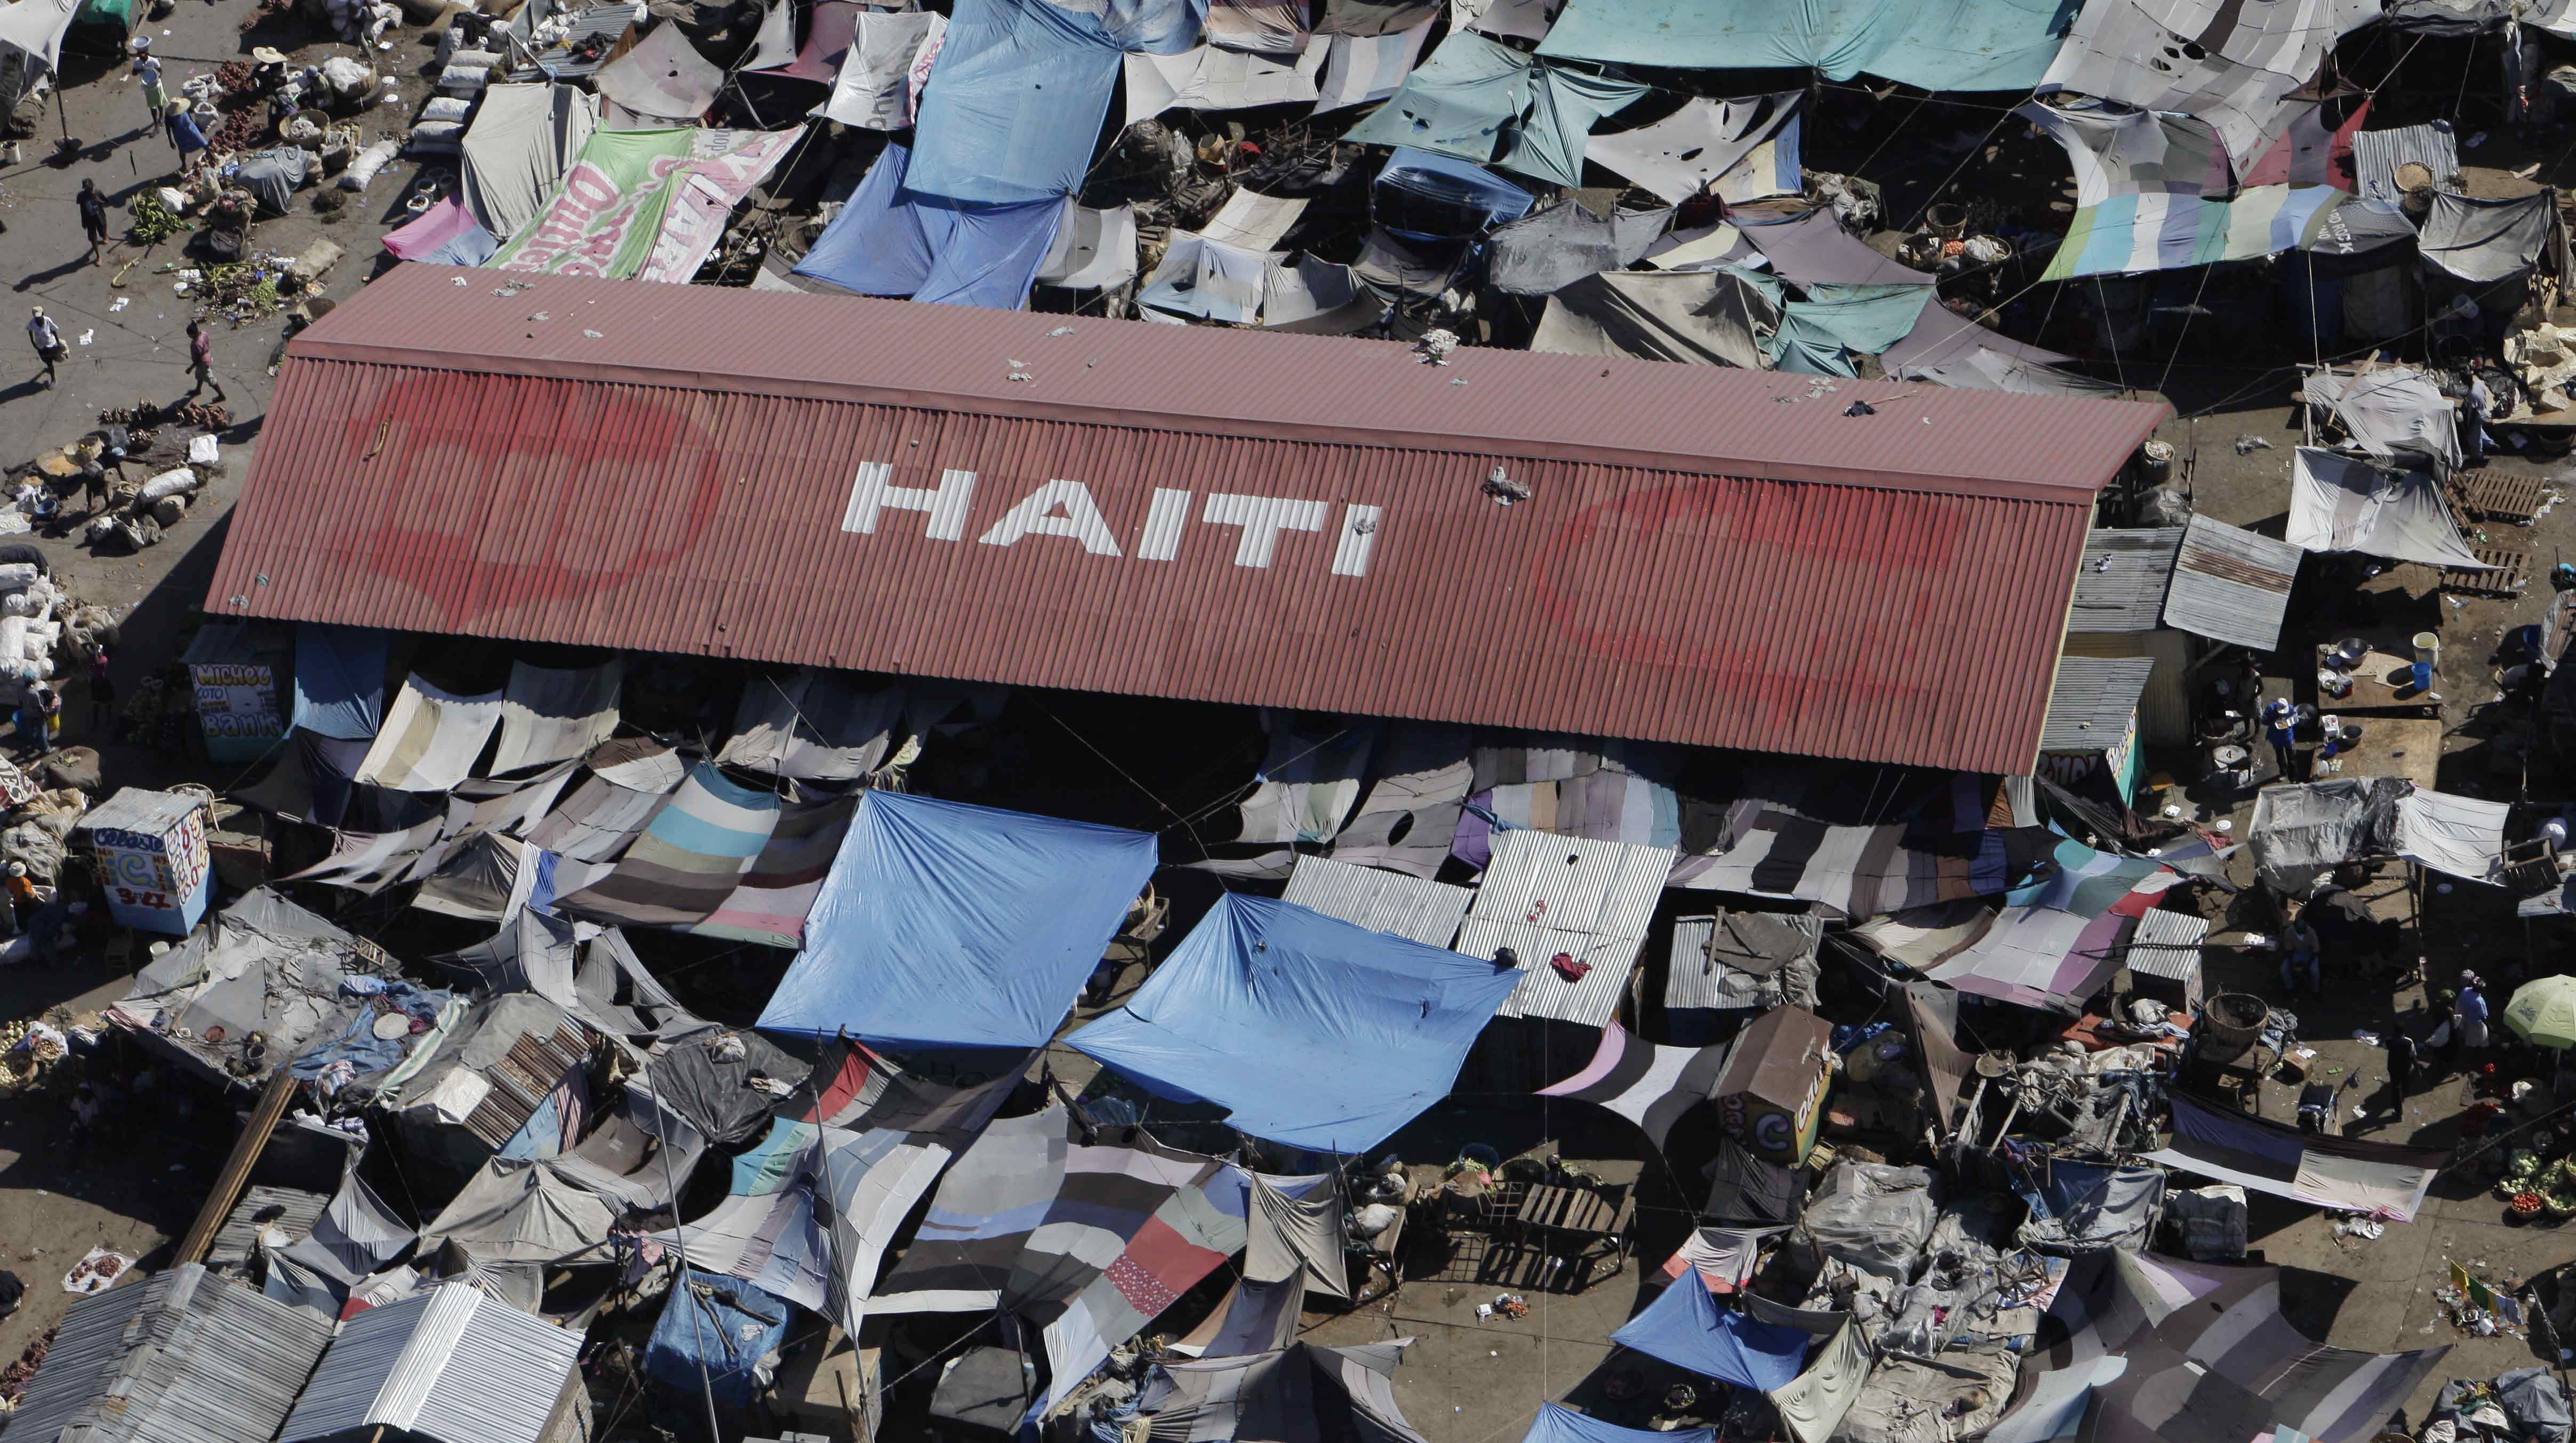 The Haiti country director for Oxfam admitted to hiring prostitutes, which is illegal. He quietly resigned and went on to a high-level position at another charity.